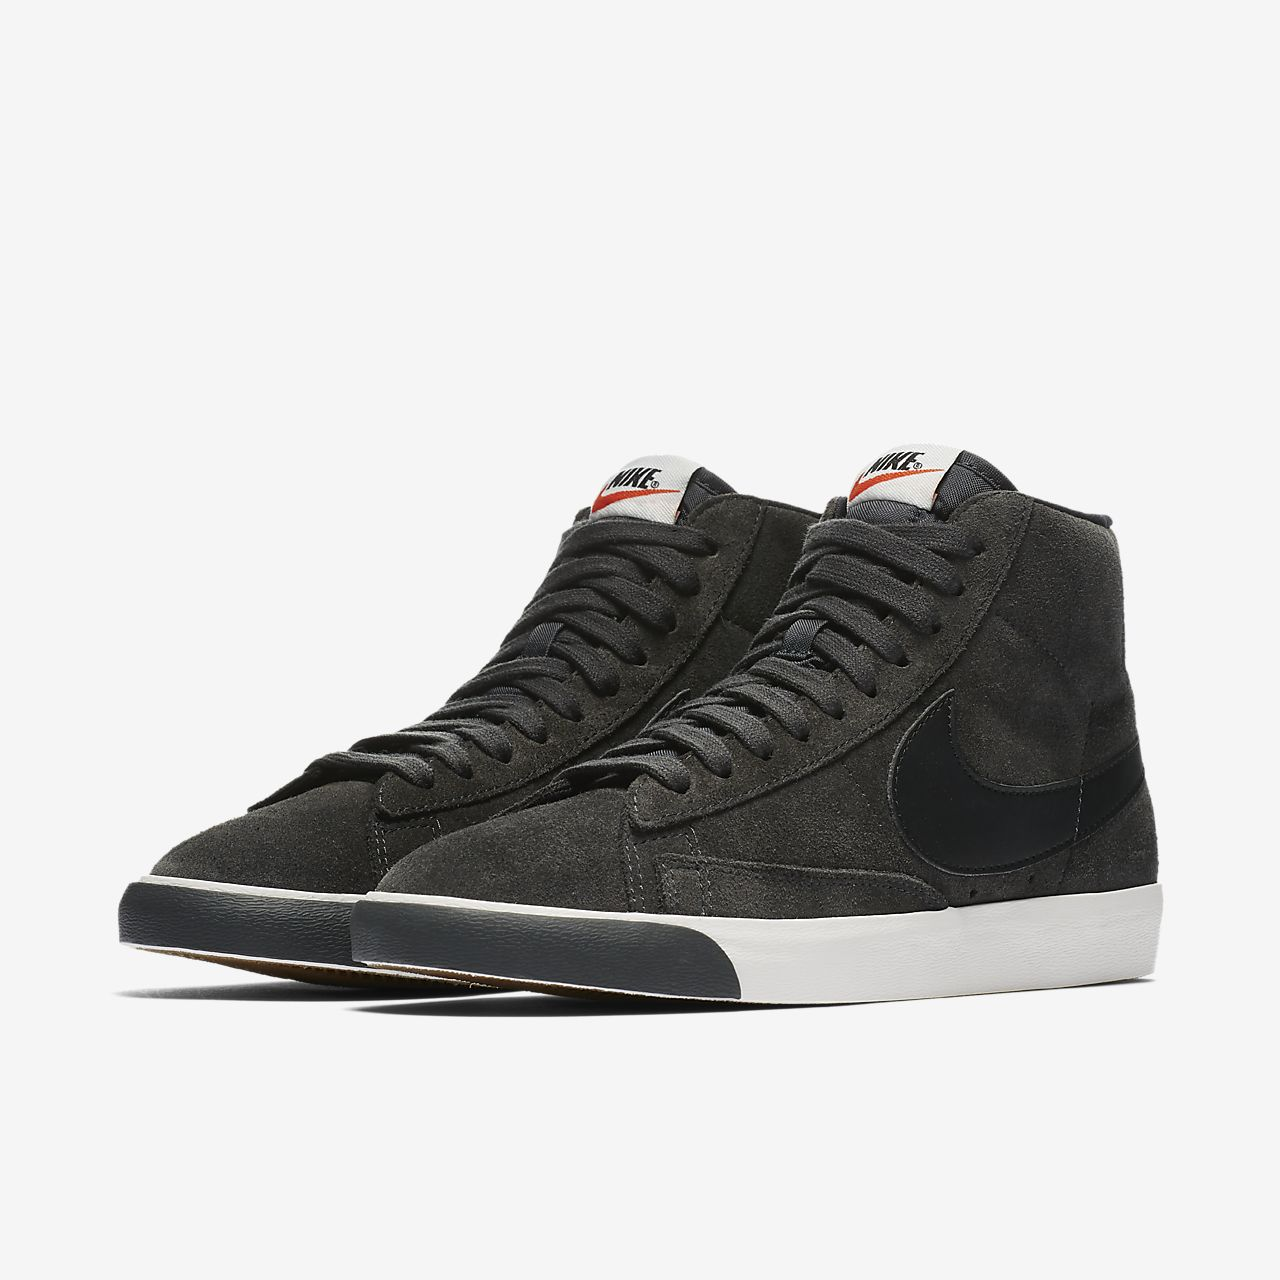 Women's Nike Blazer Low Lx In women's size 8 color is Smokey Mauve/Sepia Red toe box is a velour, sides of shoes are suede and laces have cute silver lace caps Super cute shoes and in great condition.